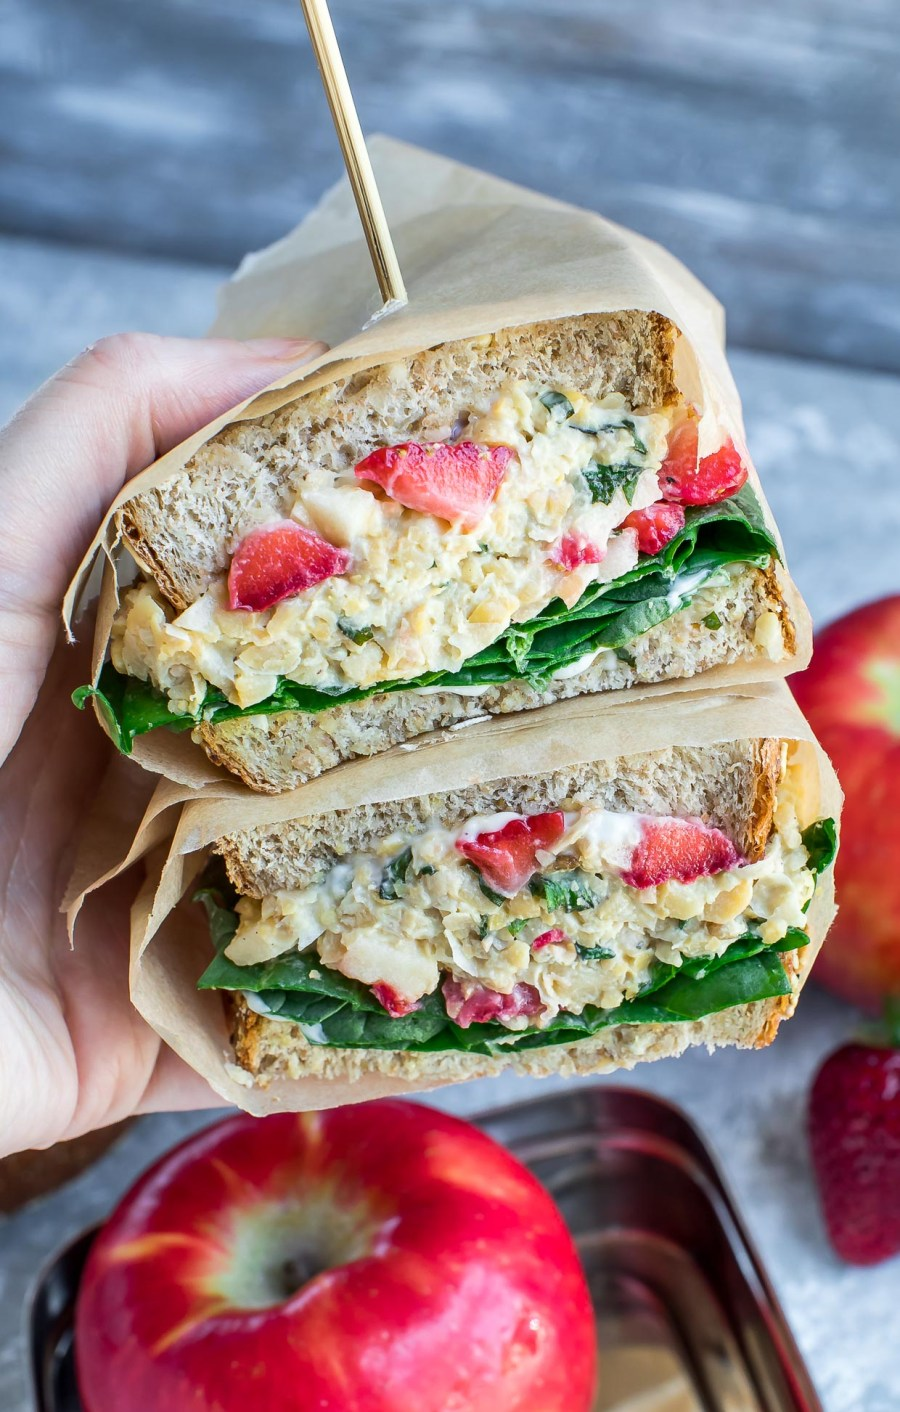 This Strawberry Basil Chickpea Salad Sandwich makes a tasty (and portable!) lunch for work, school, or home. Even better? It's quick, easy, and healthy too!